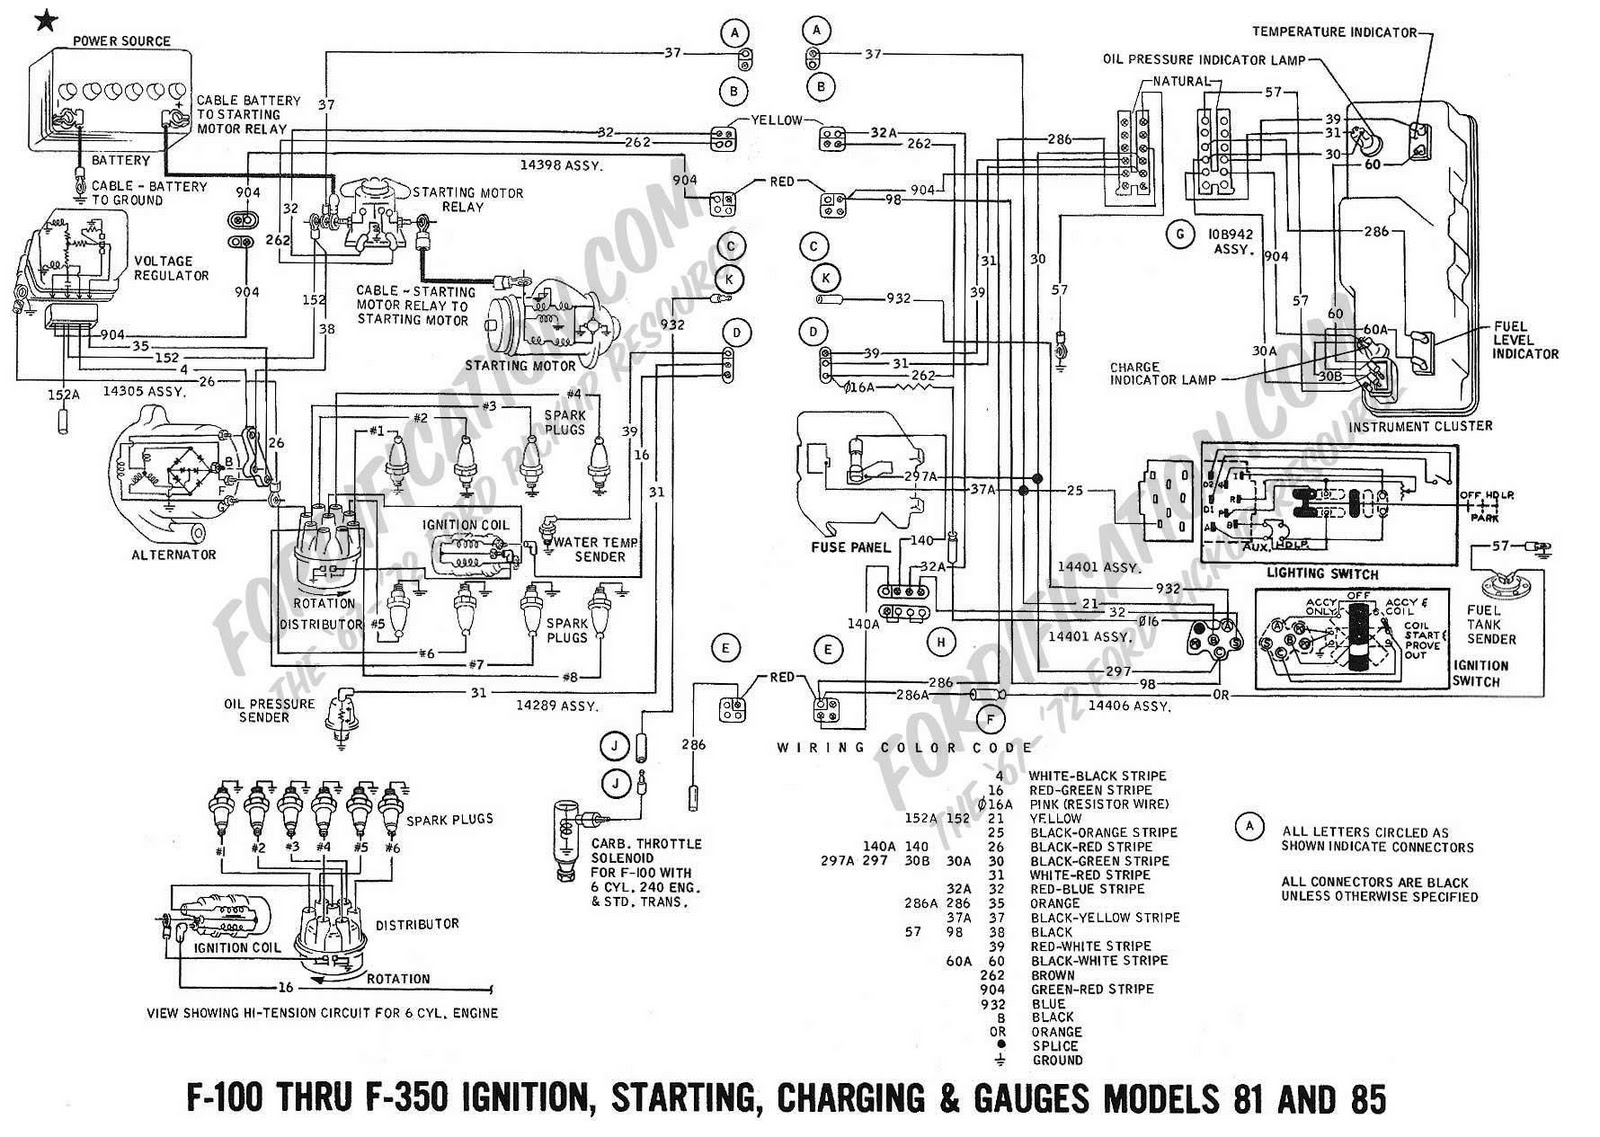 medium resolution of 1957 ford wiring harness diagram database reg 1977 ford truck wiring diagrams 1957 ford thunderbird underhood